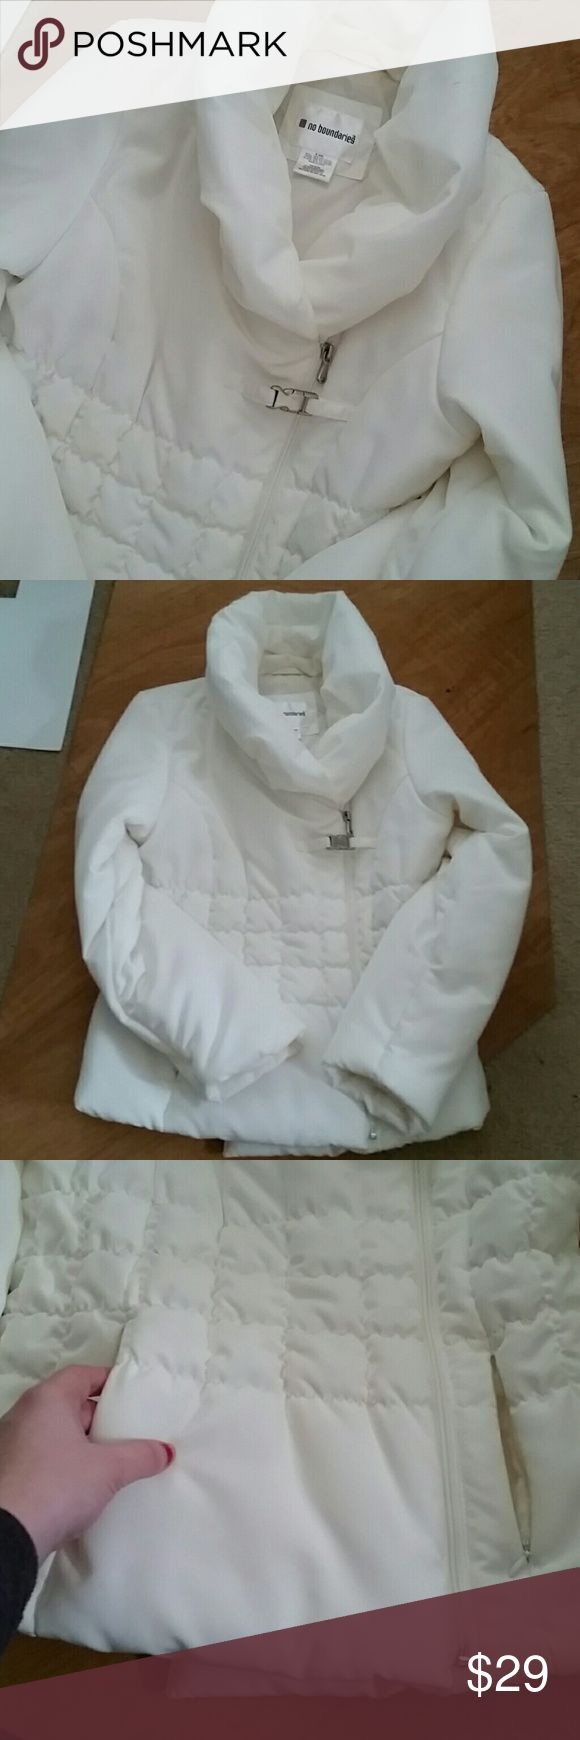 Quilted Cozy Warm Puffer Cowl White Jacket Coat Extremely warm and comfortable puffer jacket, only worn a few times. Amazing for winter with a puffy cowl neck and padded pockets. Asymmetric zip overlapping for extra warmth, you will not feel the wind in this coat. White to off White. Size small 4/6 Jackets & Coats Puffers